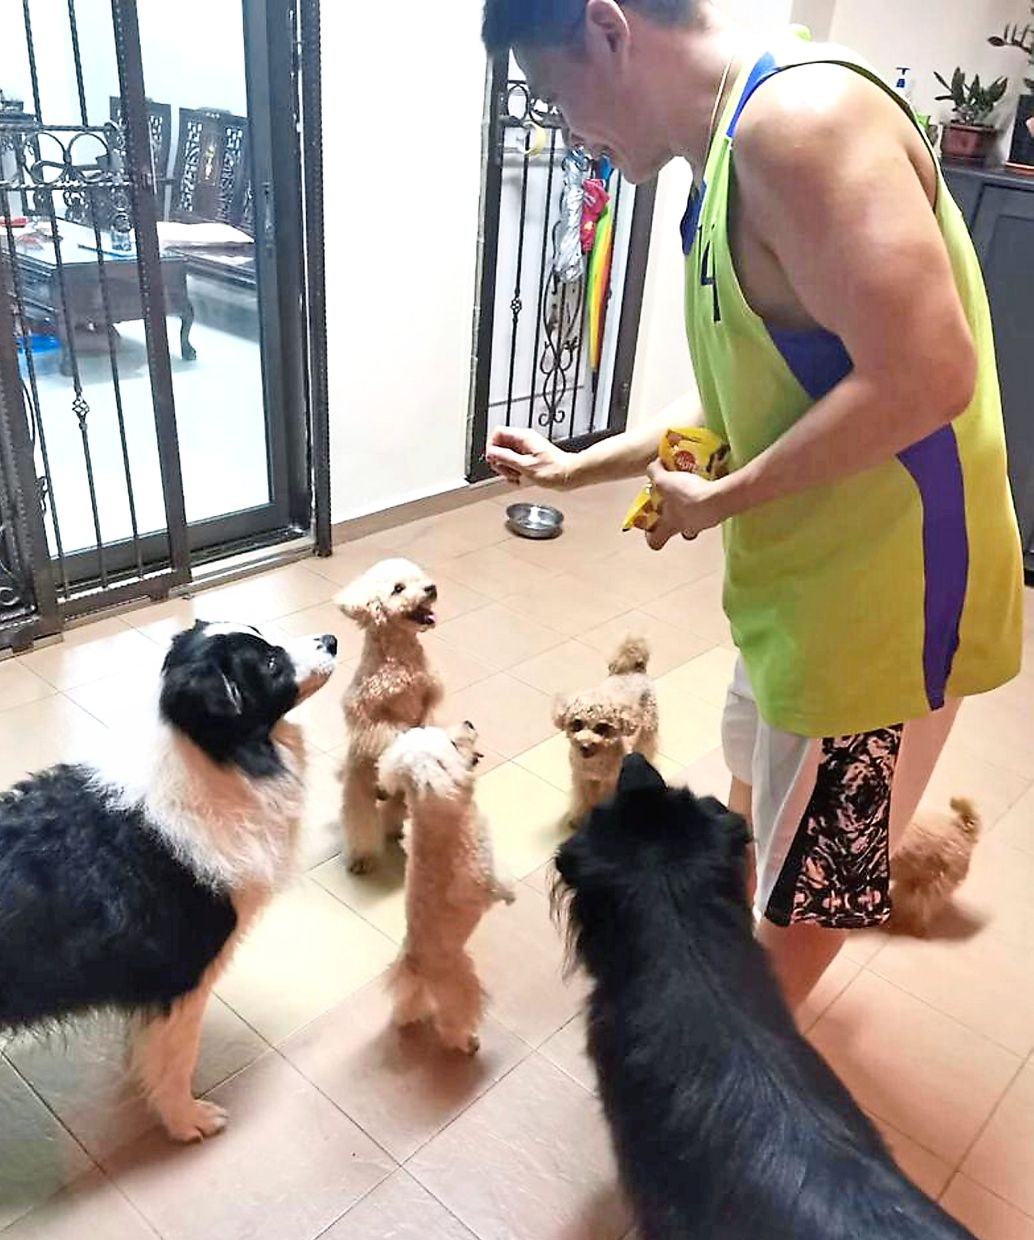 Tan interacting with some of his dogs. He says children learn the importance of discipline and responsibility by taking care of their pets.